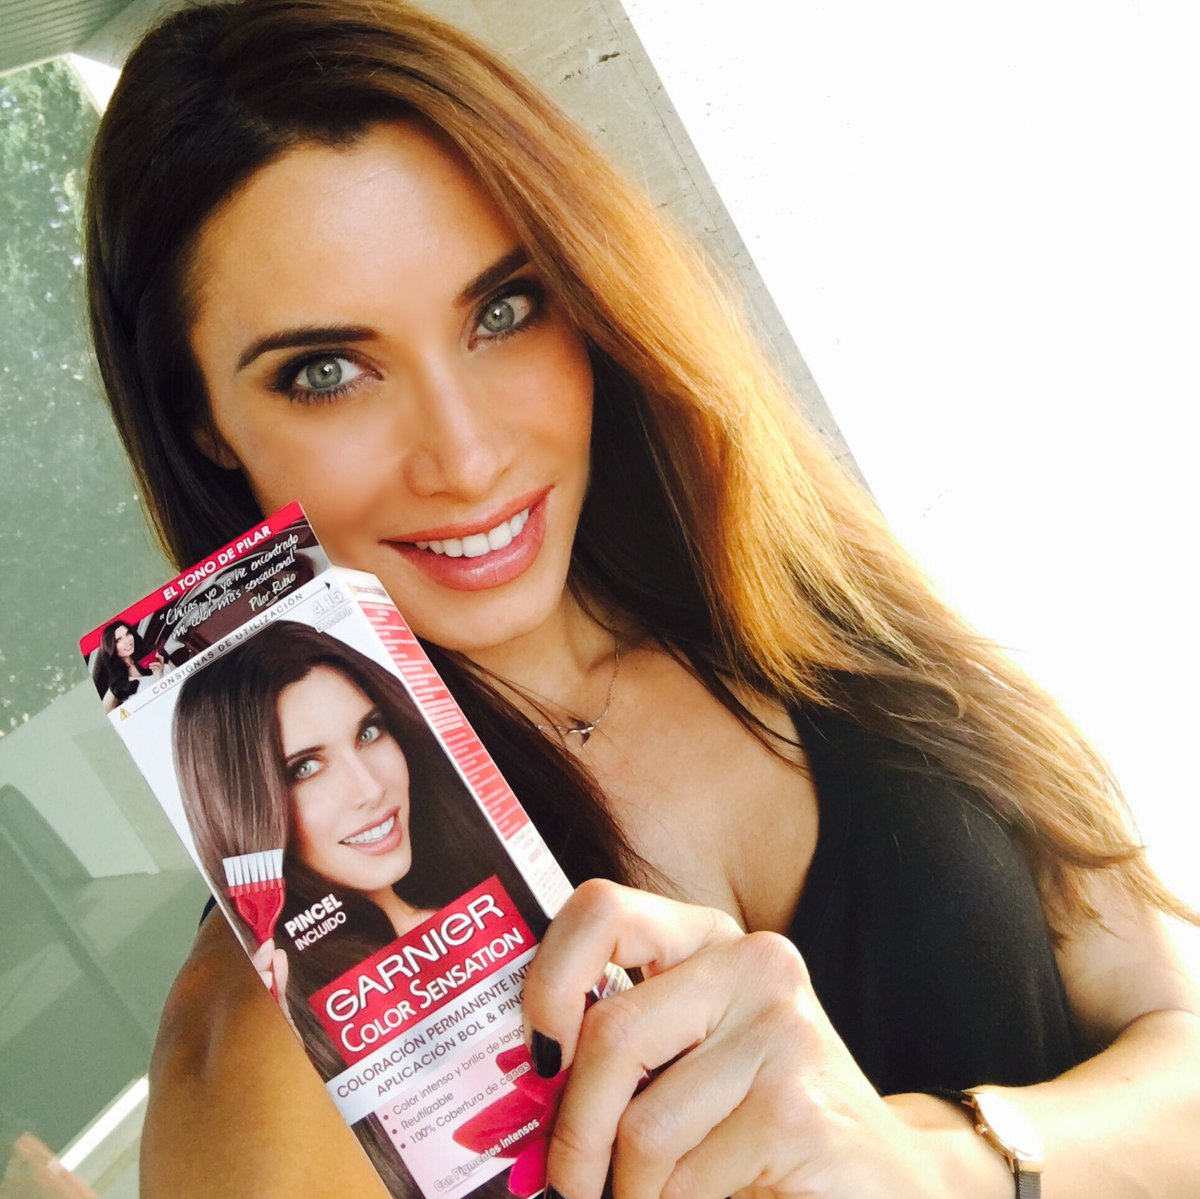 Pilar Rubio On Twitter Im About To Change My Hair Color In 20